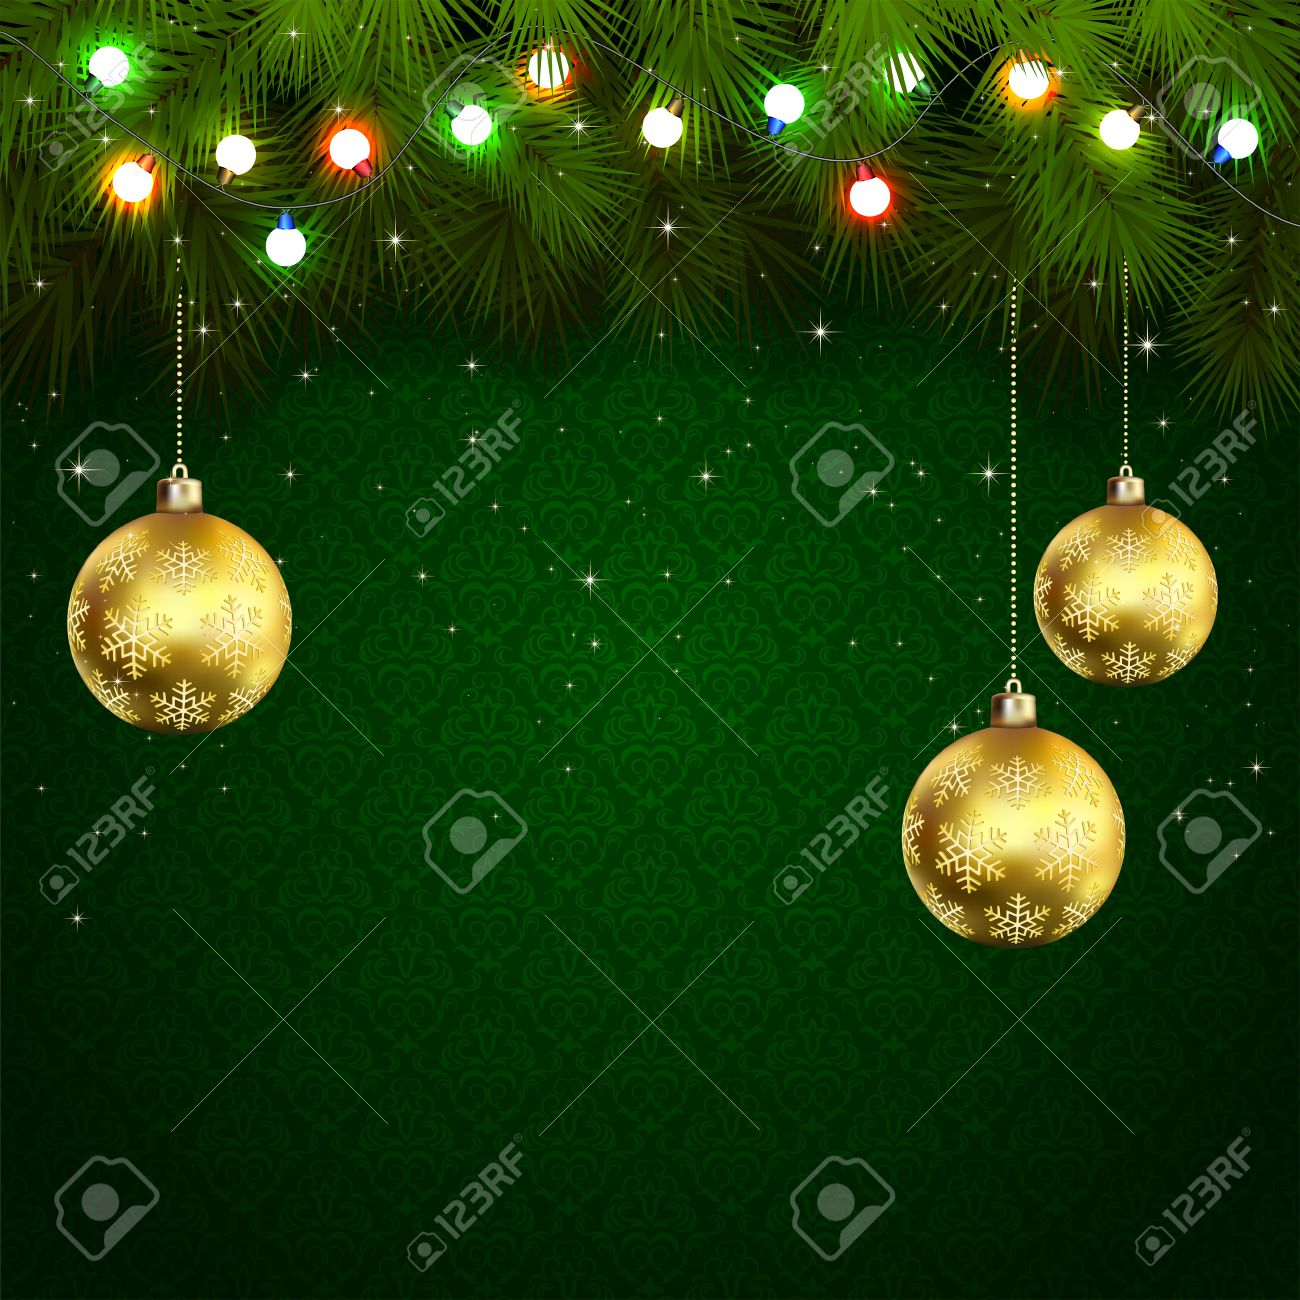 Green Wallpaper With Branches Of Christmas Tree, Baubles And ...